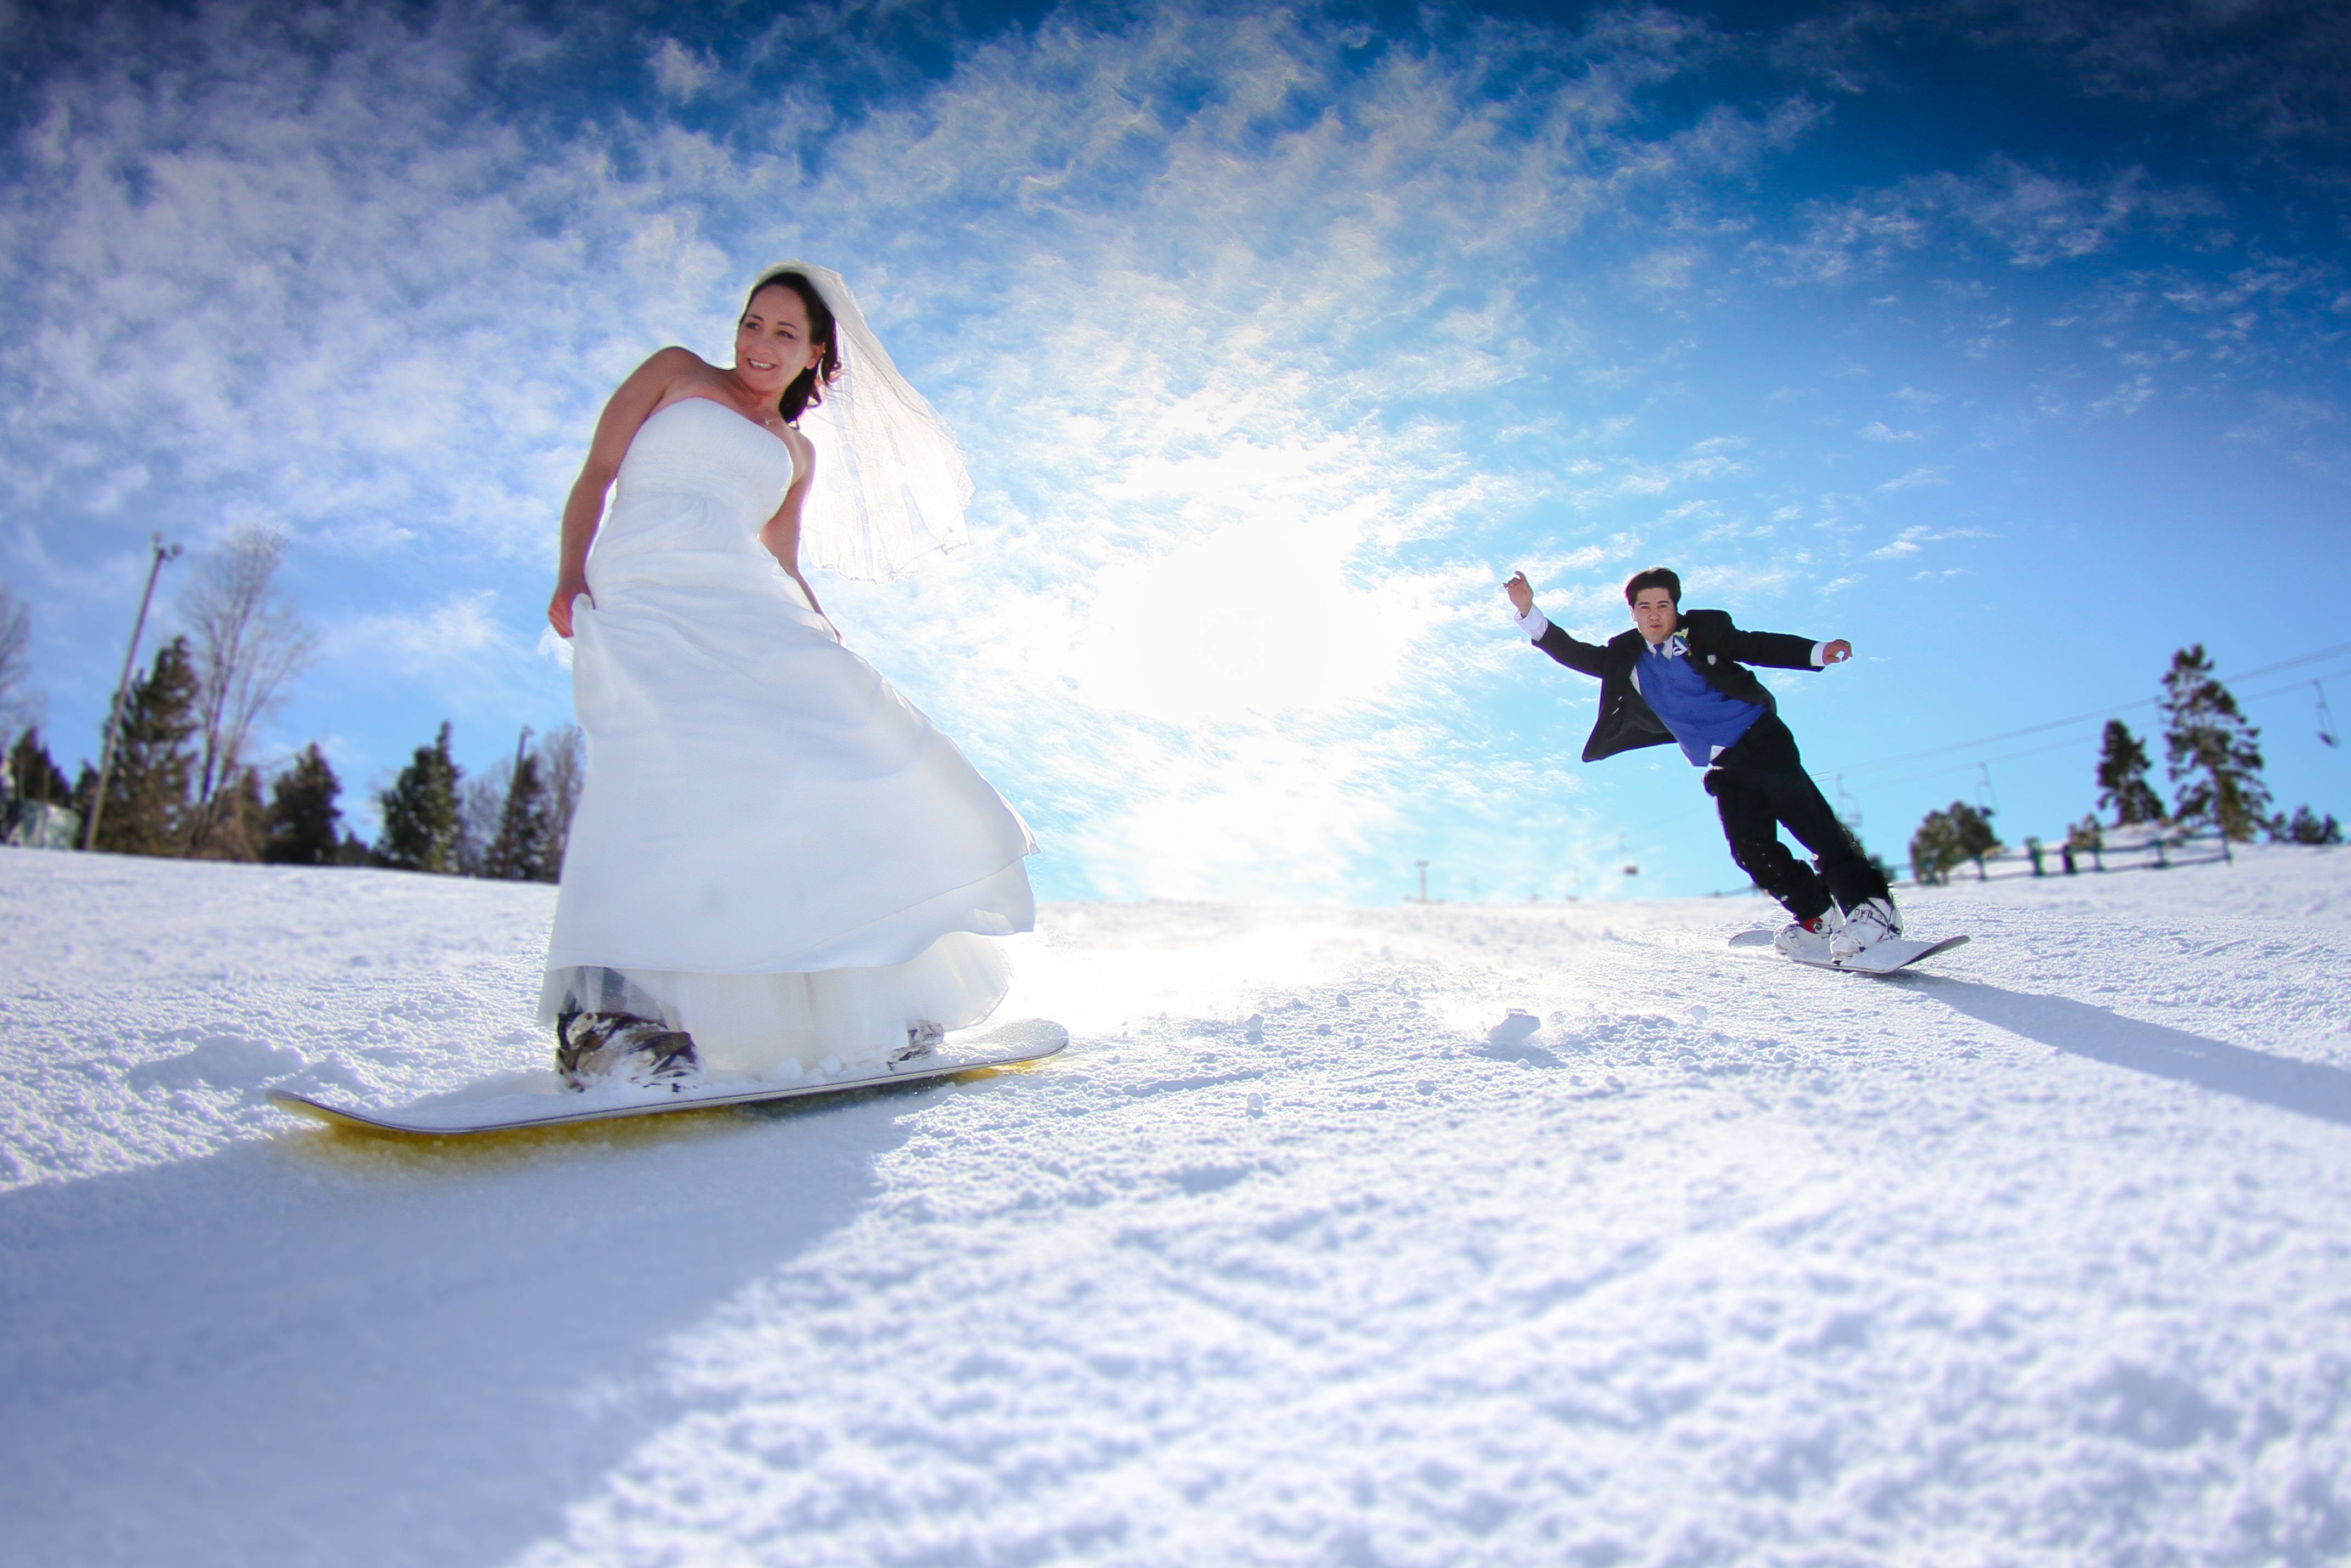 Snowboarding wallpapers images photos pictures backgrounds for Awesome vacations for couples